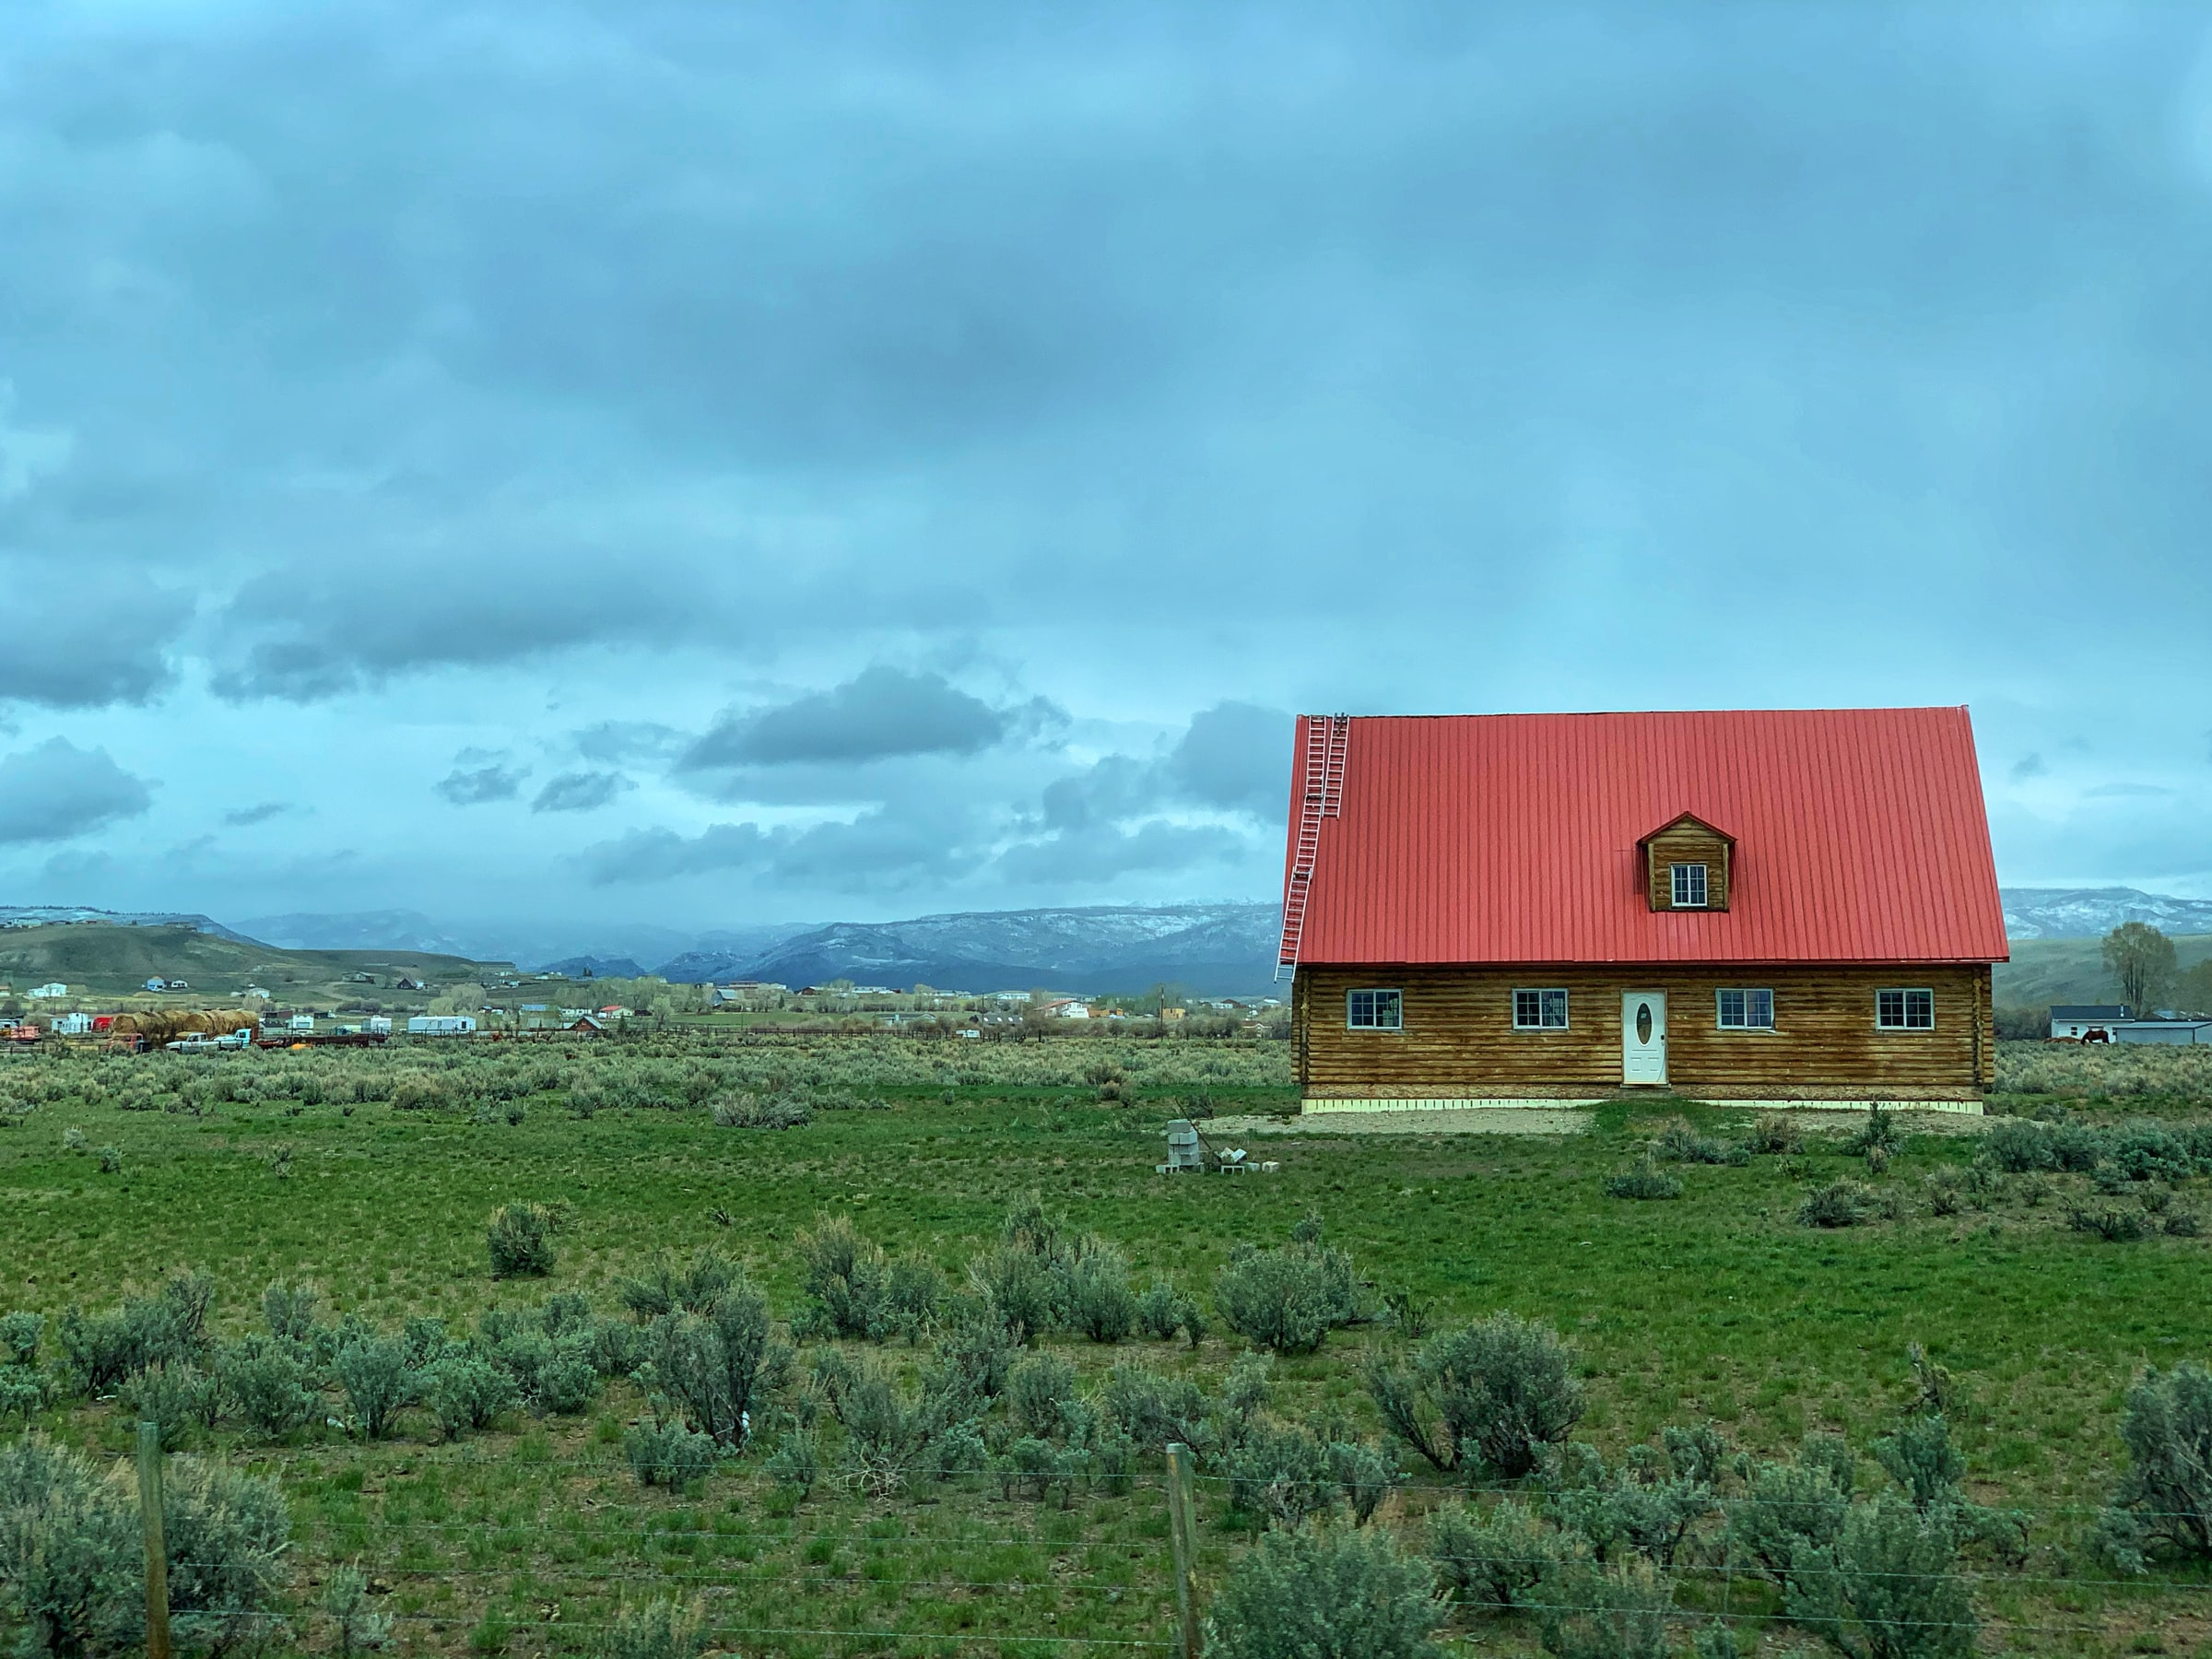 image of red roofed house in wyoming